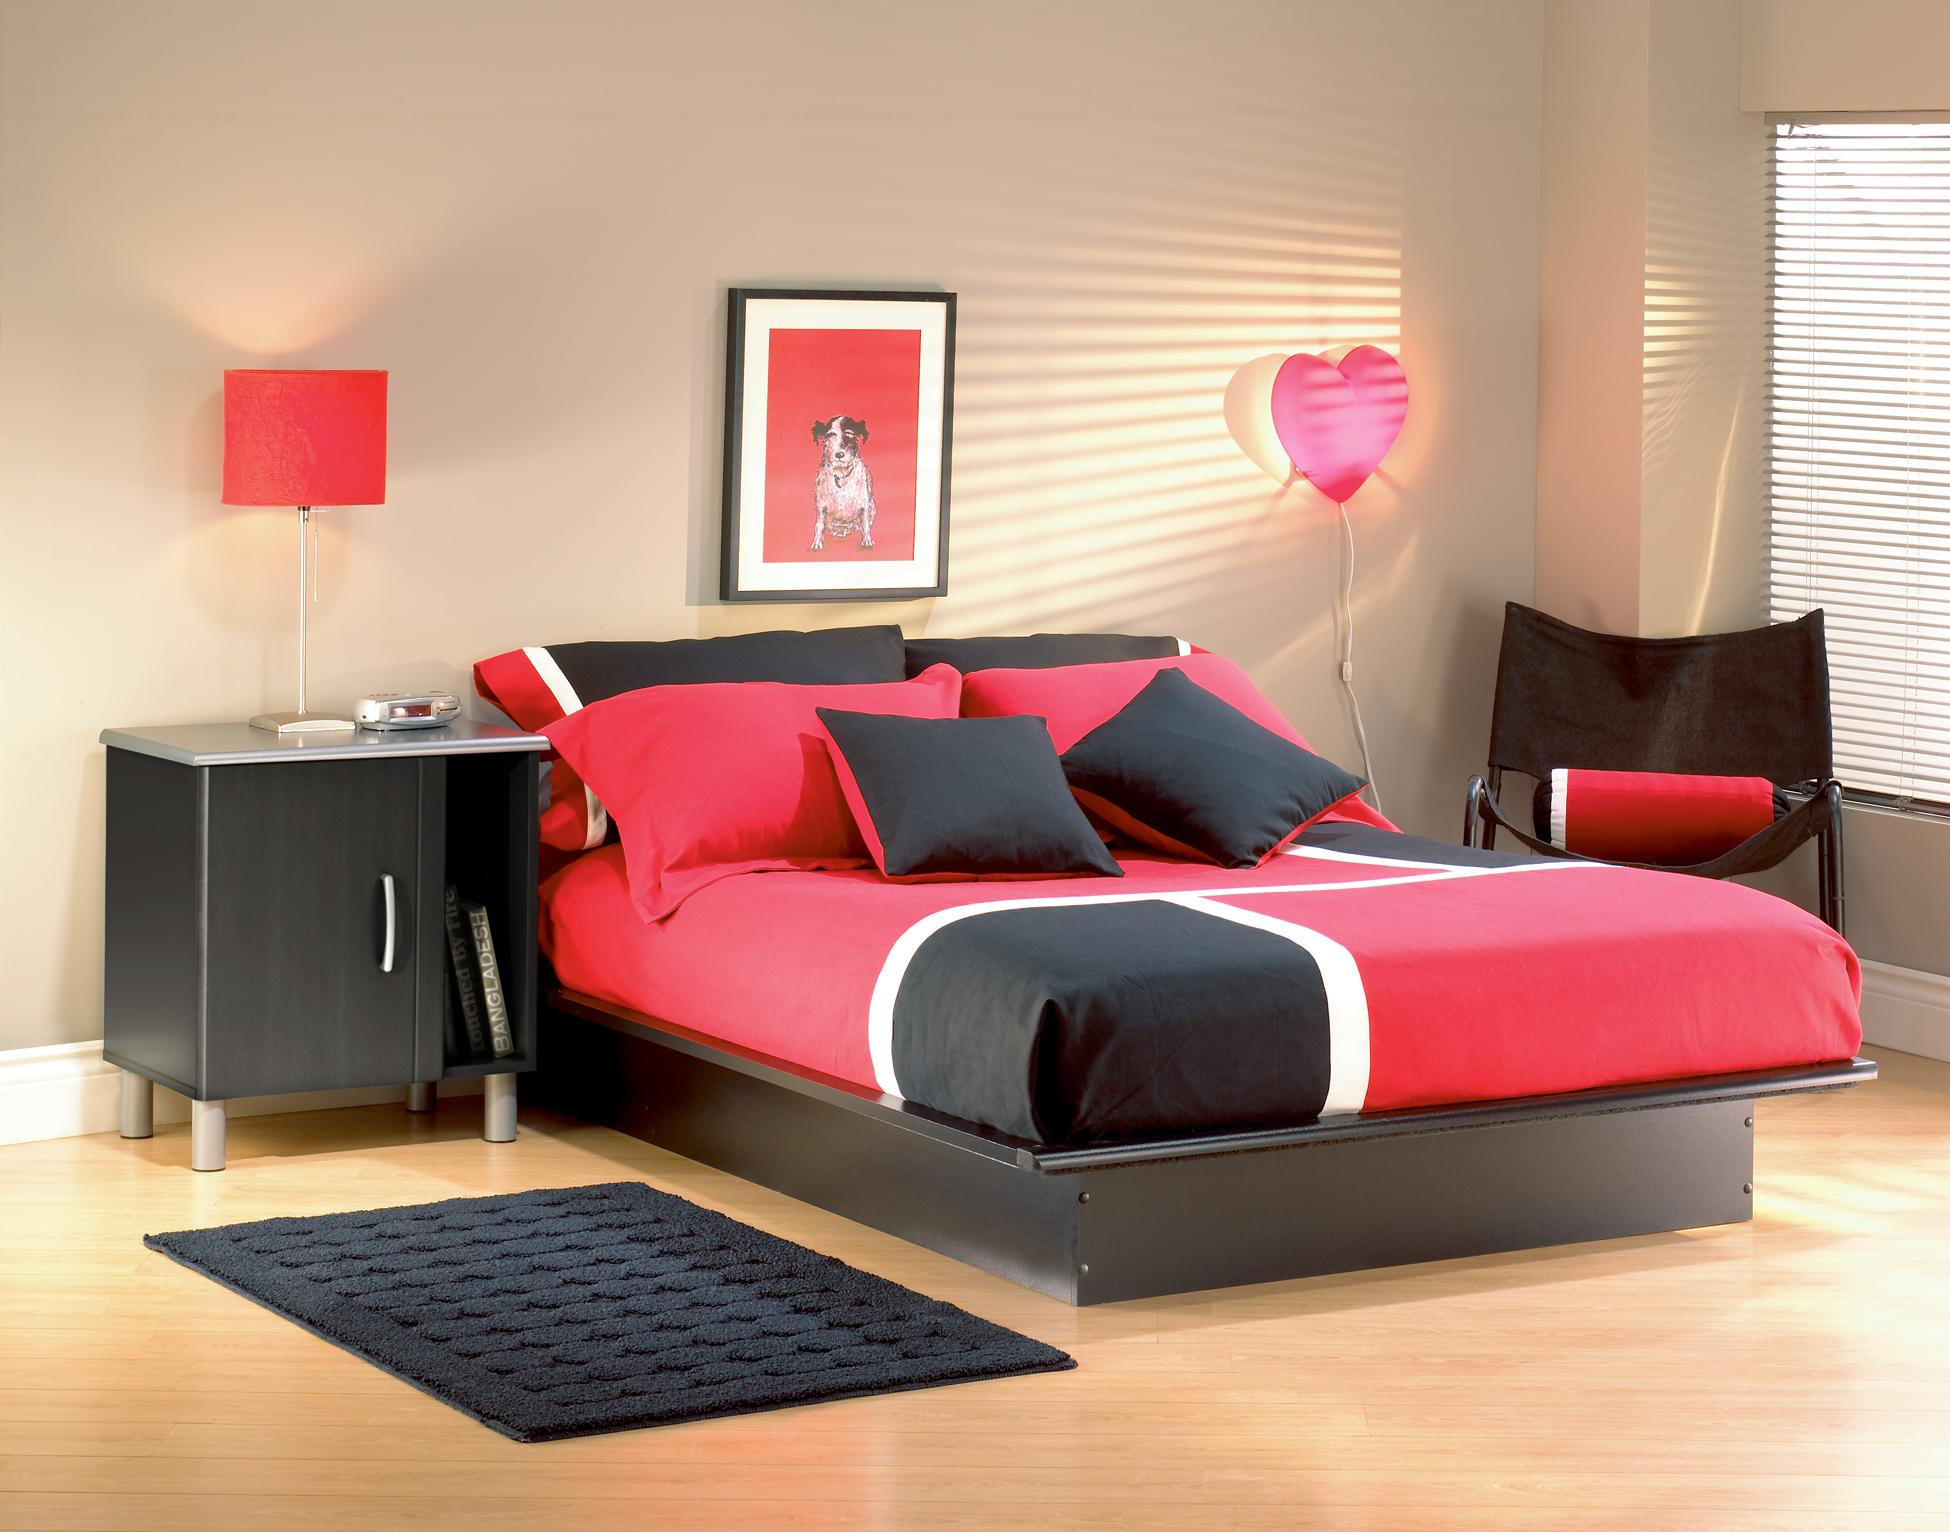 South shore 3070234 step one full platform bed 54 in for Floating bed designs